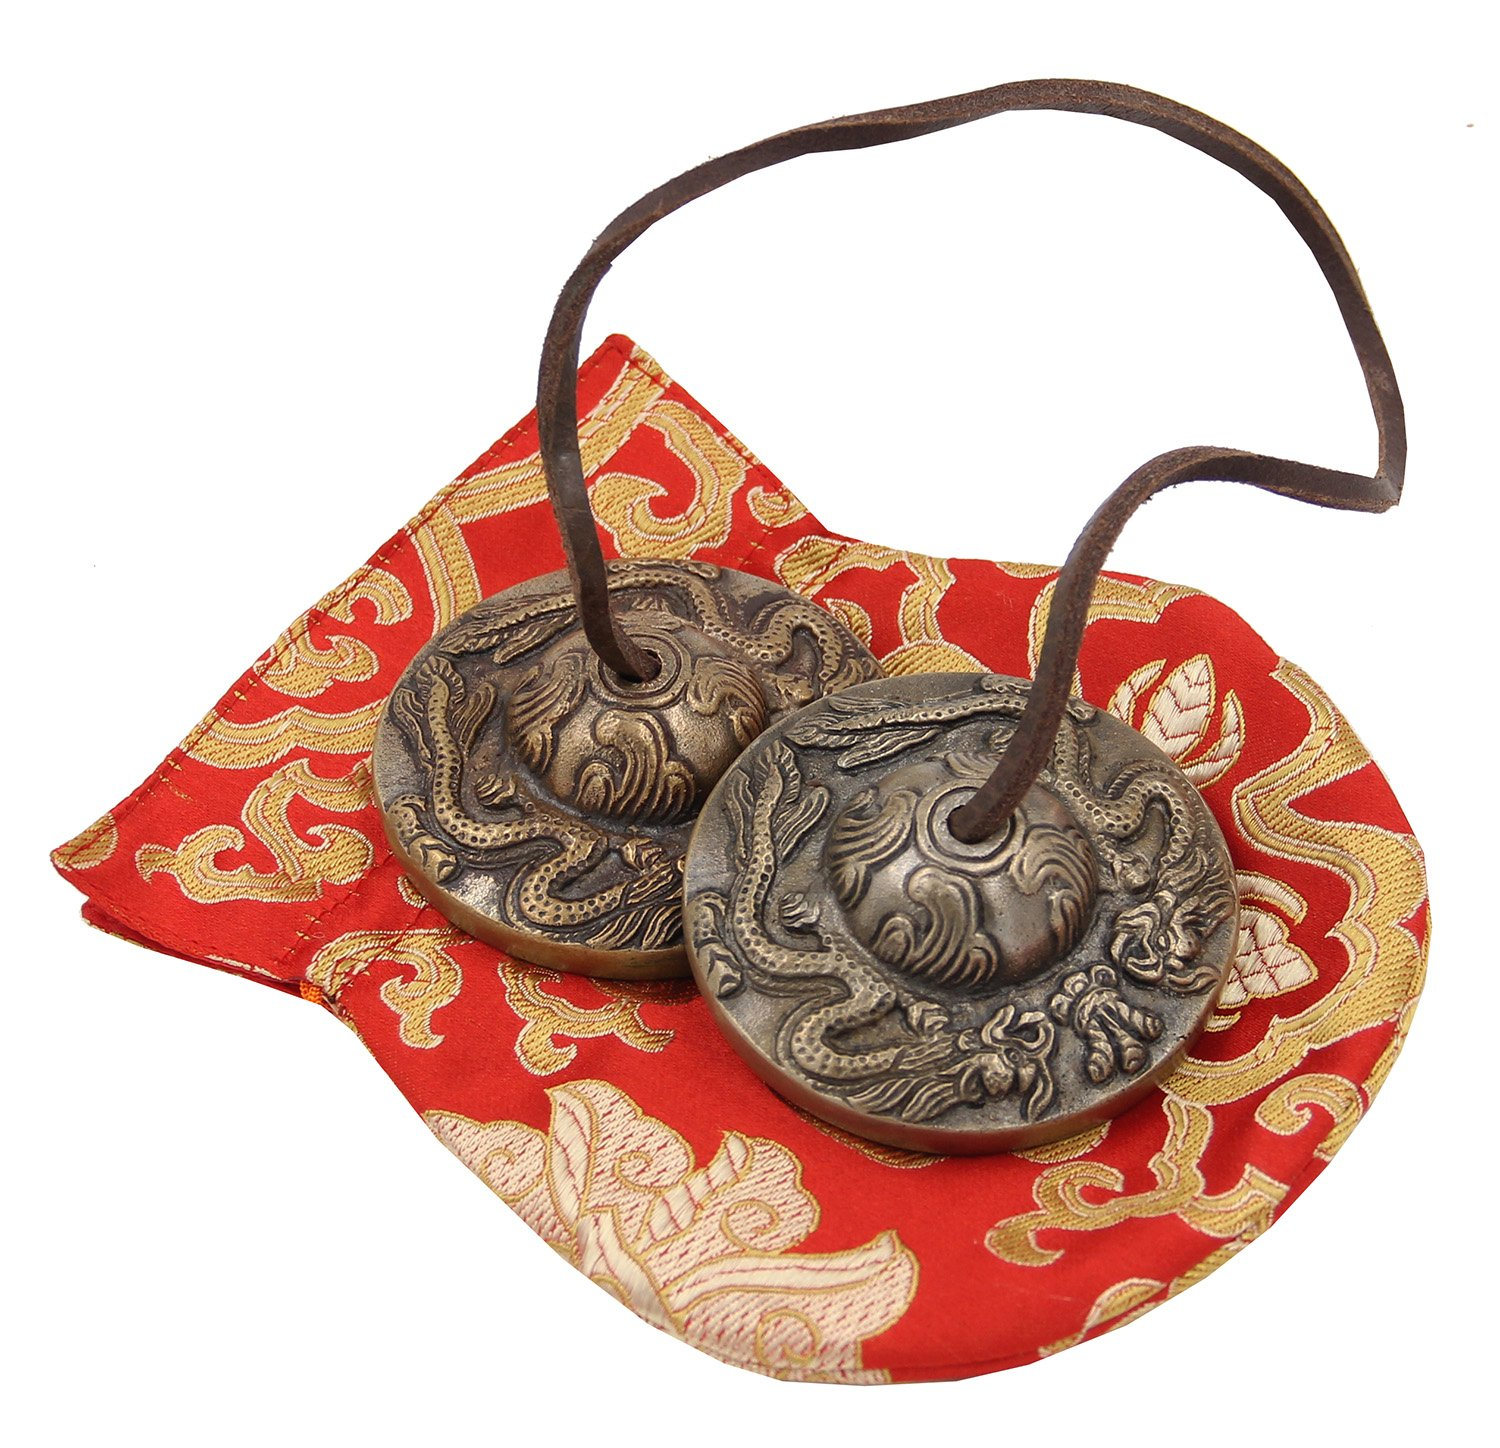 DharmaObjects Large Tibetan Premium Quality Dragon Tingsha Cymbals 3 With Pouch Dha-0280